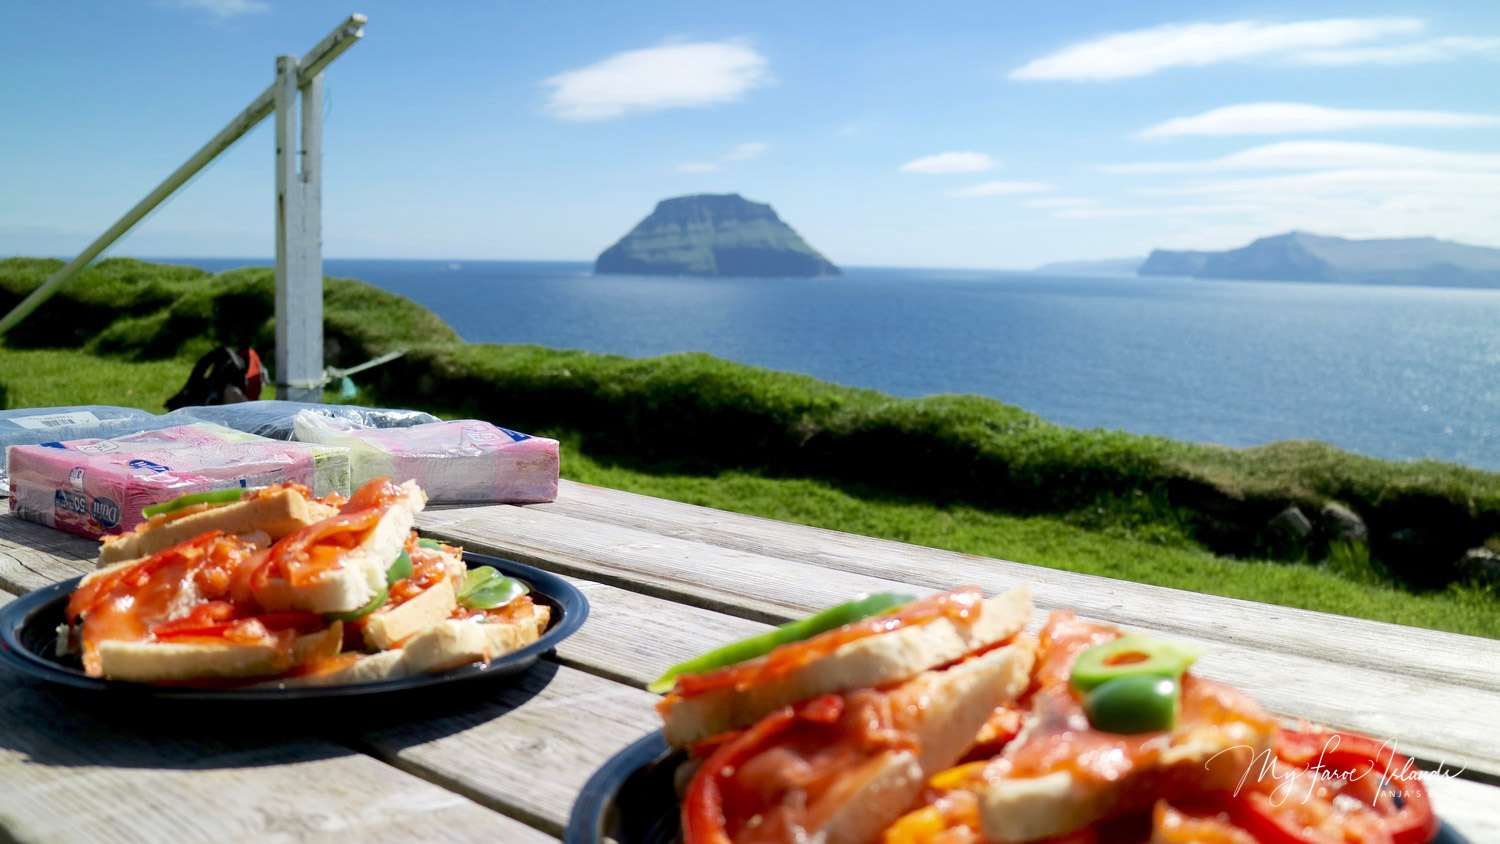 Having freshly made sandwiches, overlooking Lítla Dímun. A truly unique experience